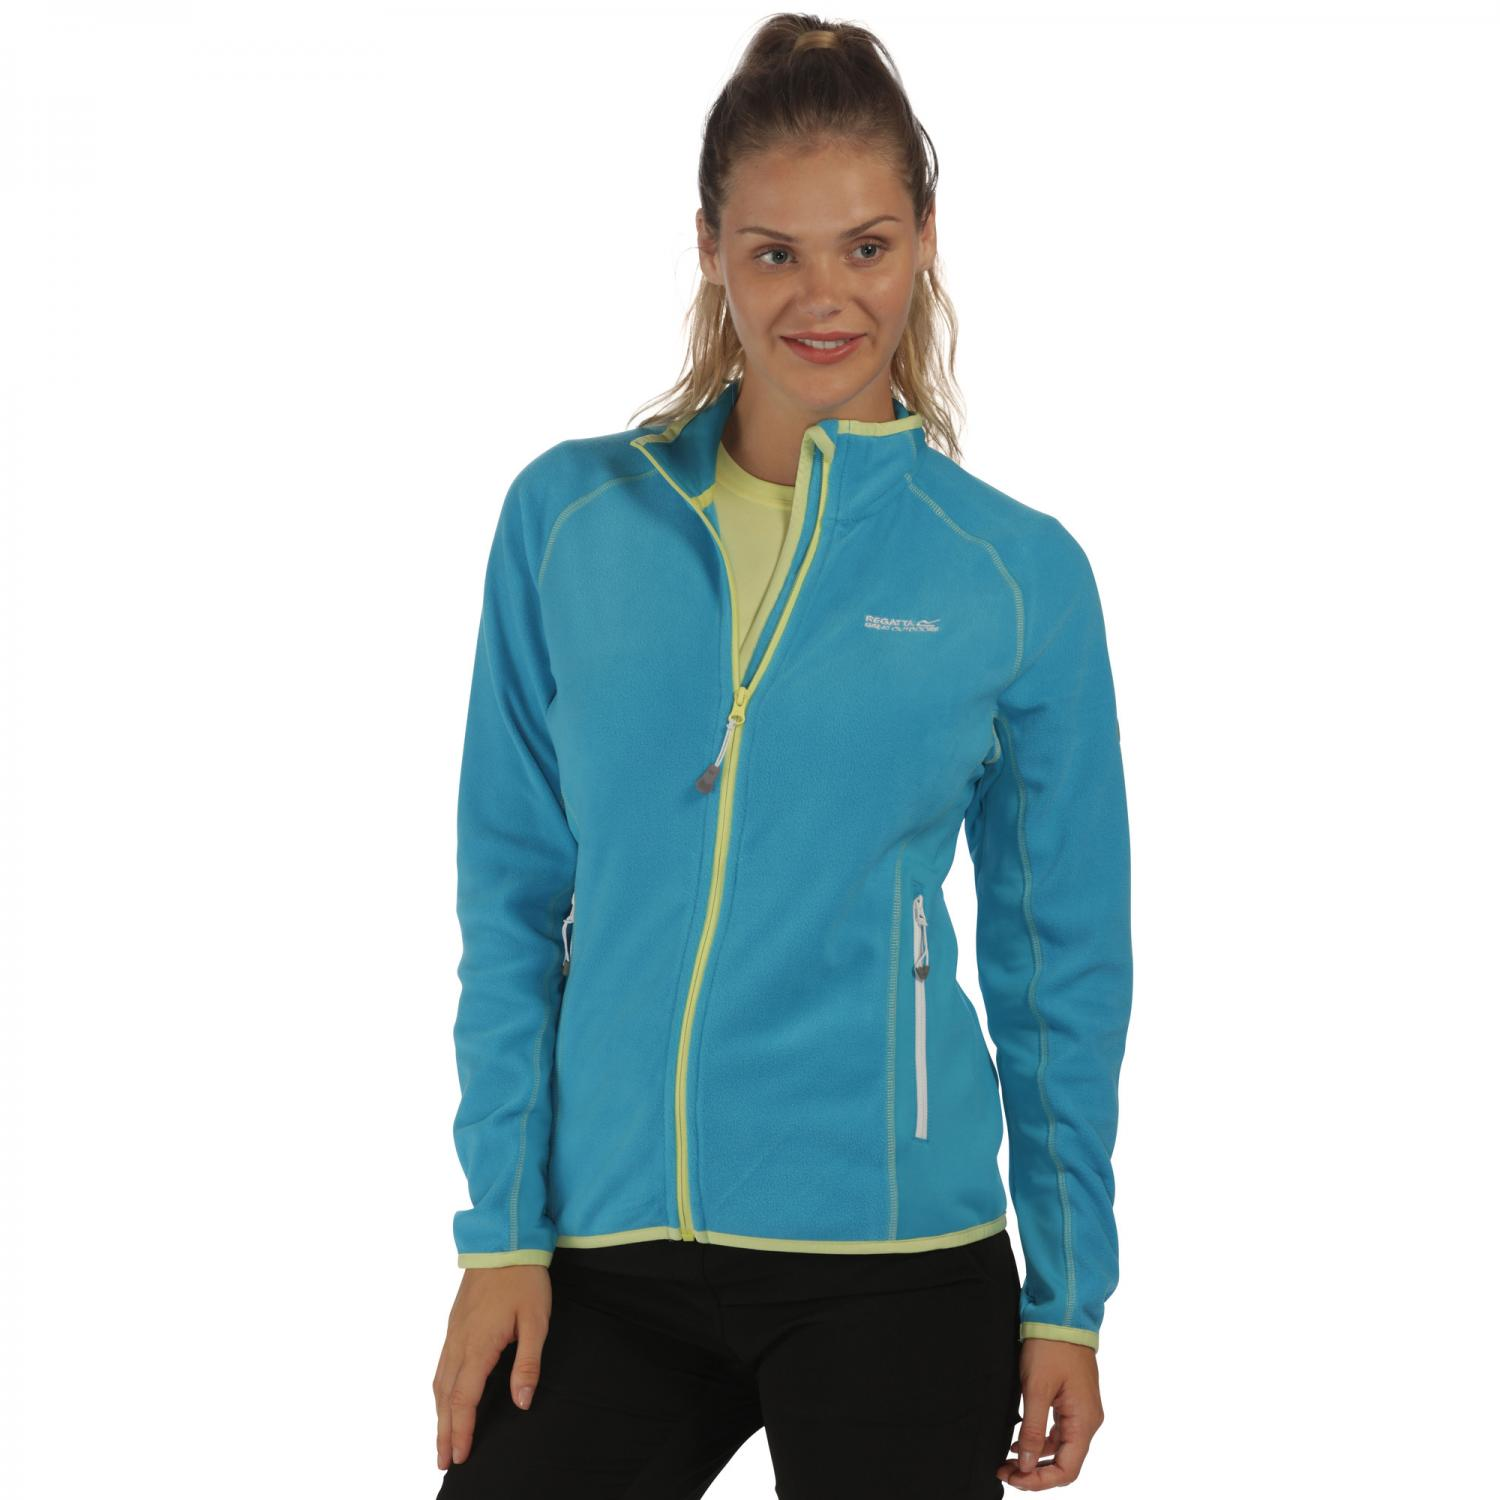 Jomor Fleece Fluro Blue